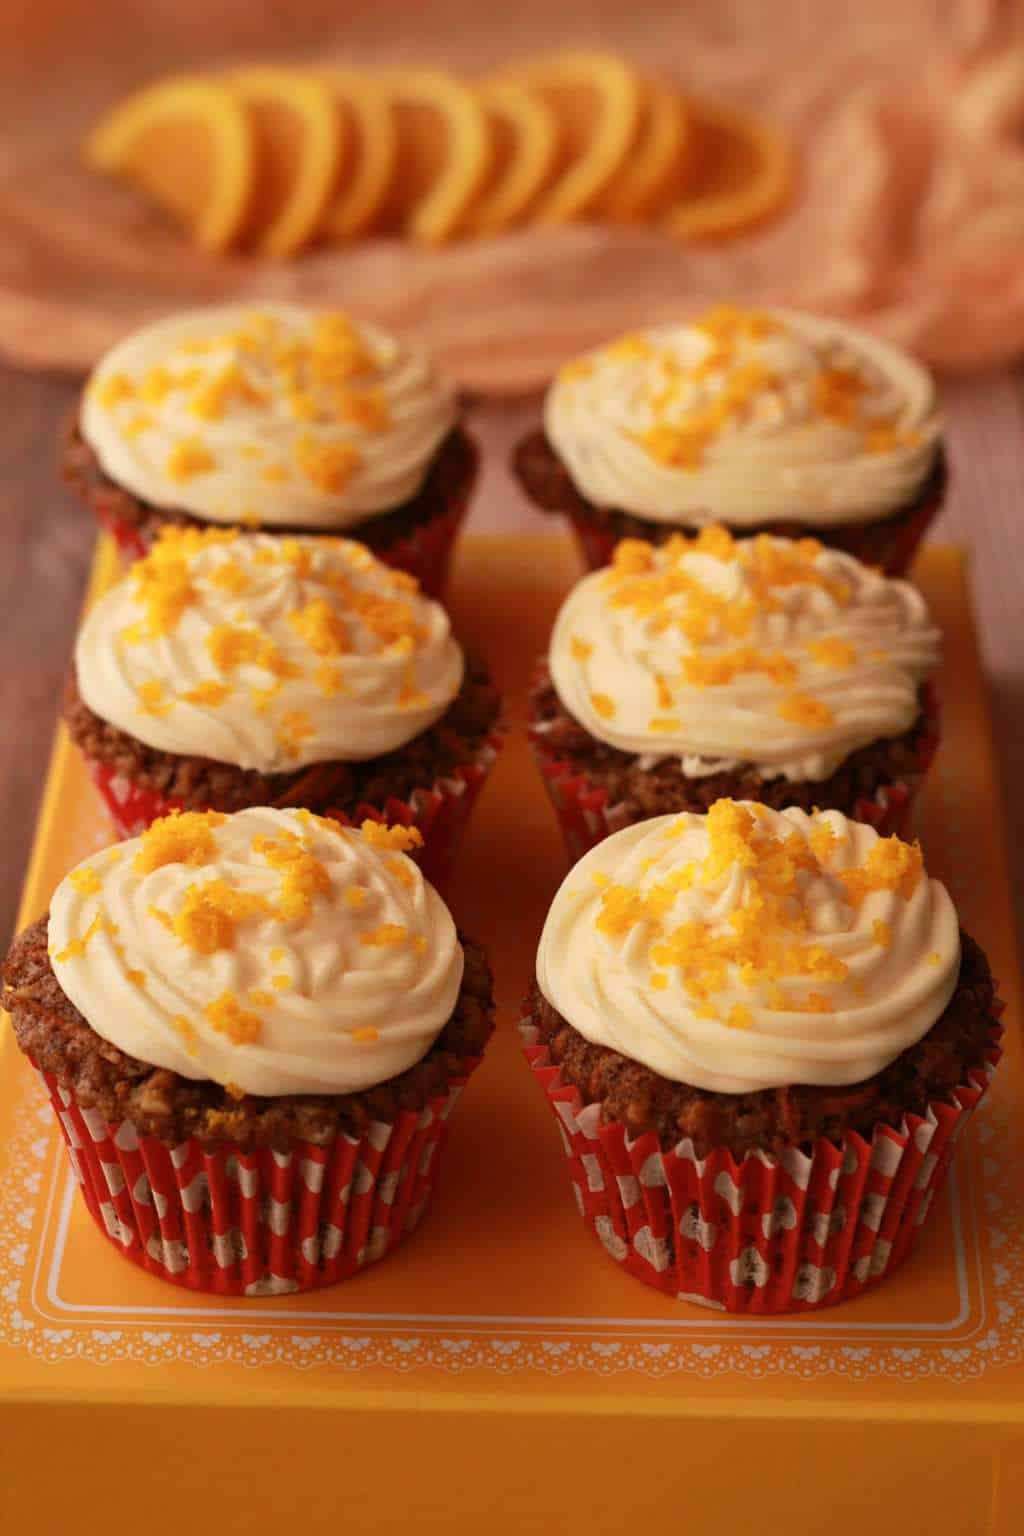 Carrot cake cupcakes on top of an orange box.